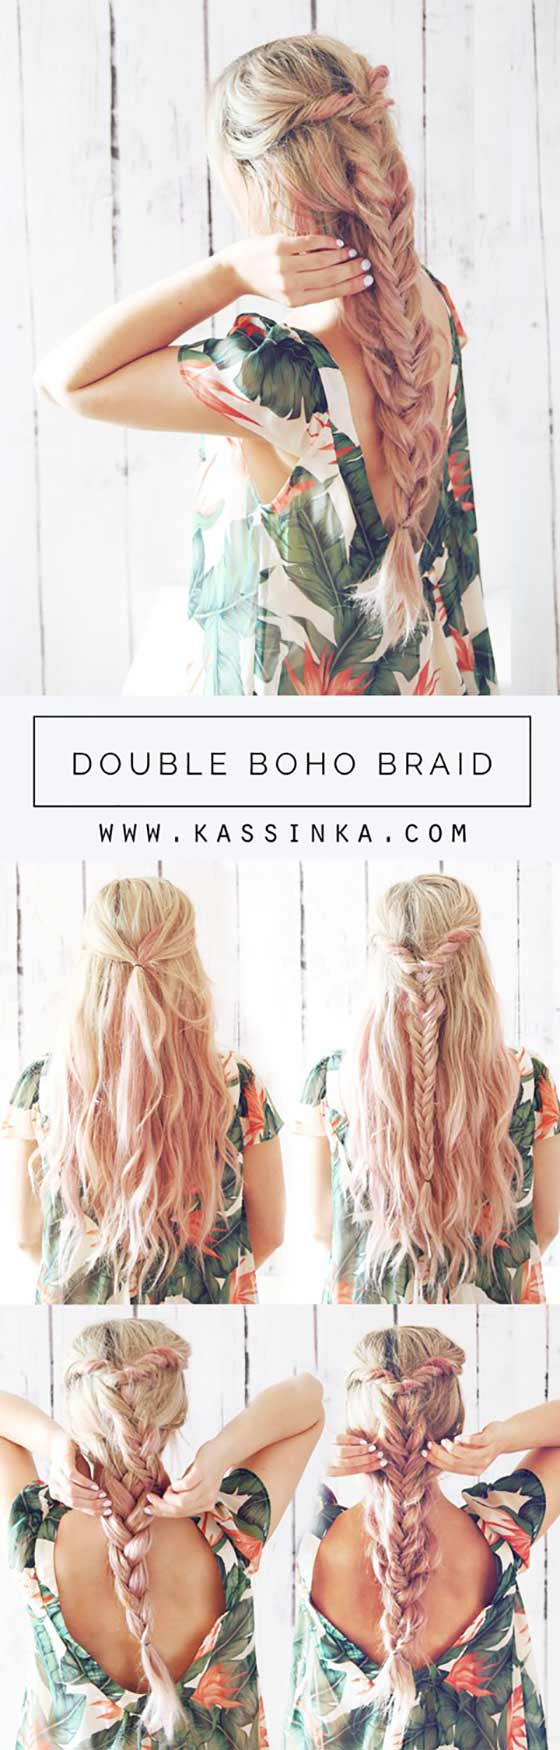 Double-Boho-Braid